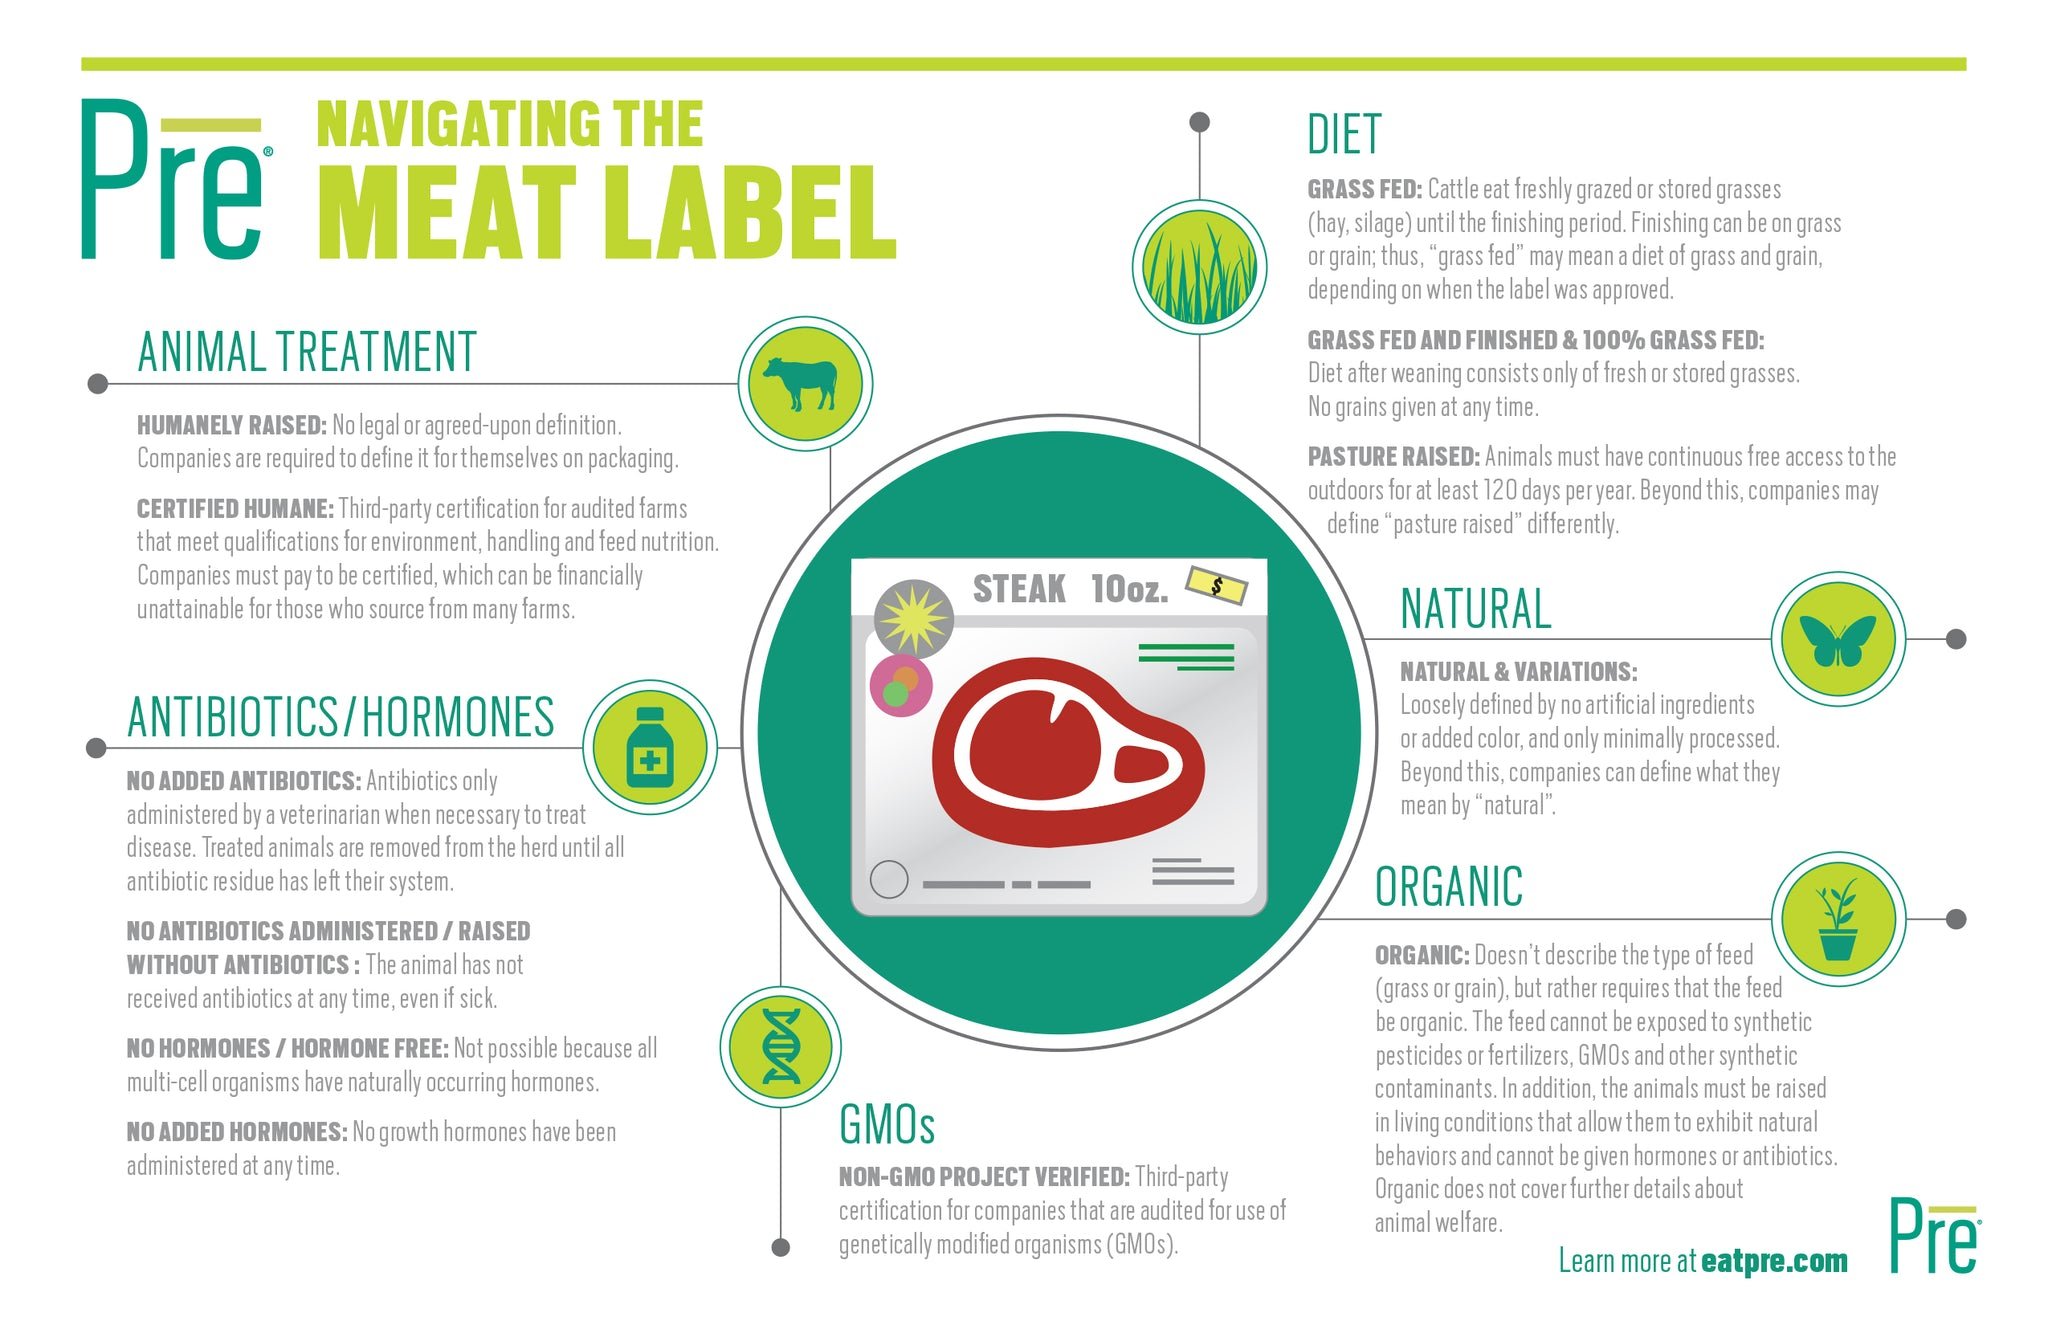 Navigating The Meat Label Pre